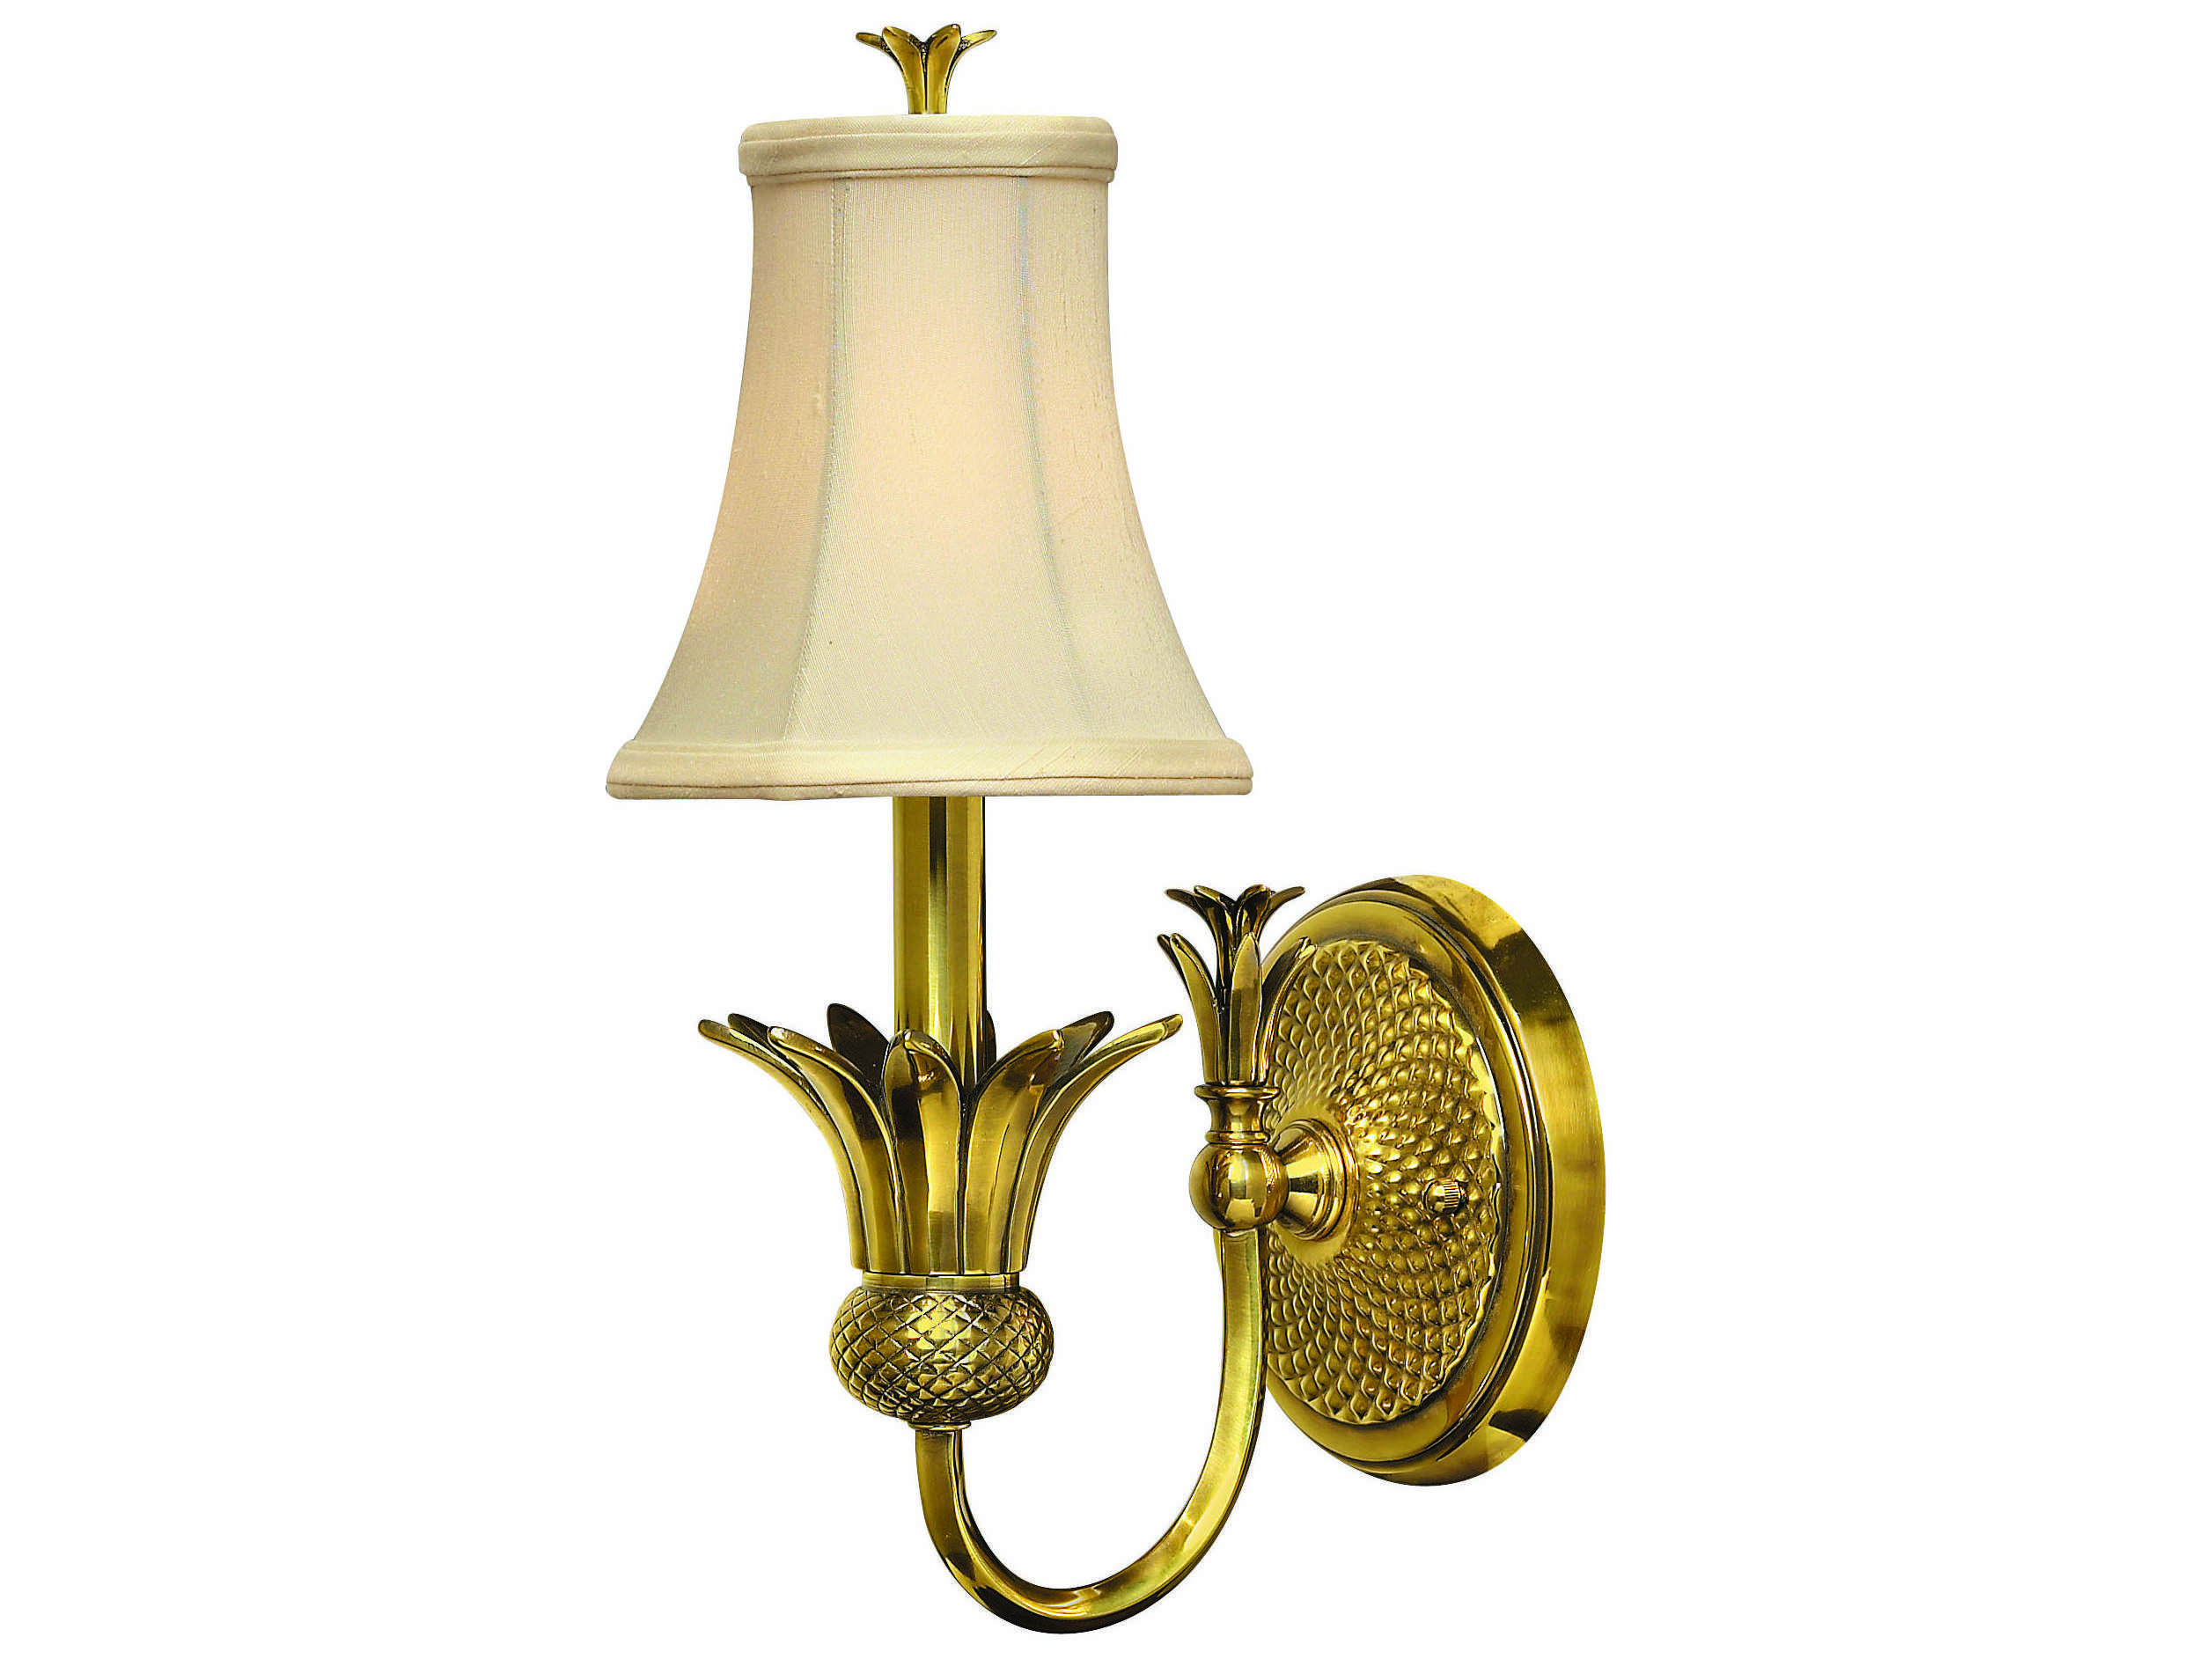 Hinkley Lighting Plantation Burnished Brass Wall Sconce 4880BB